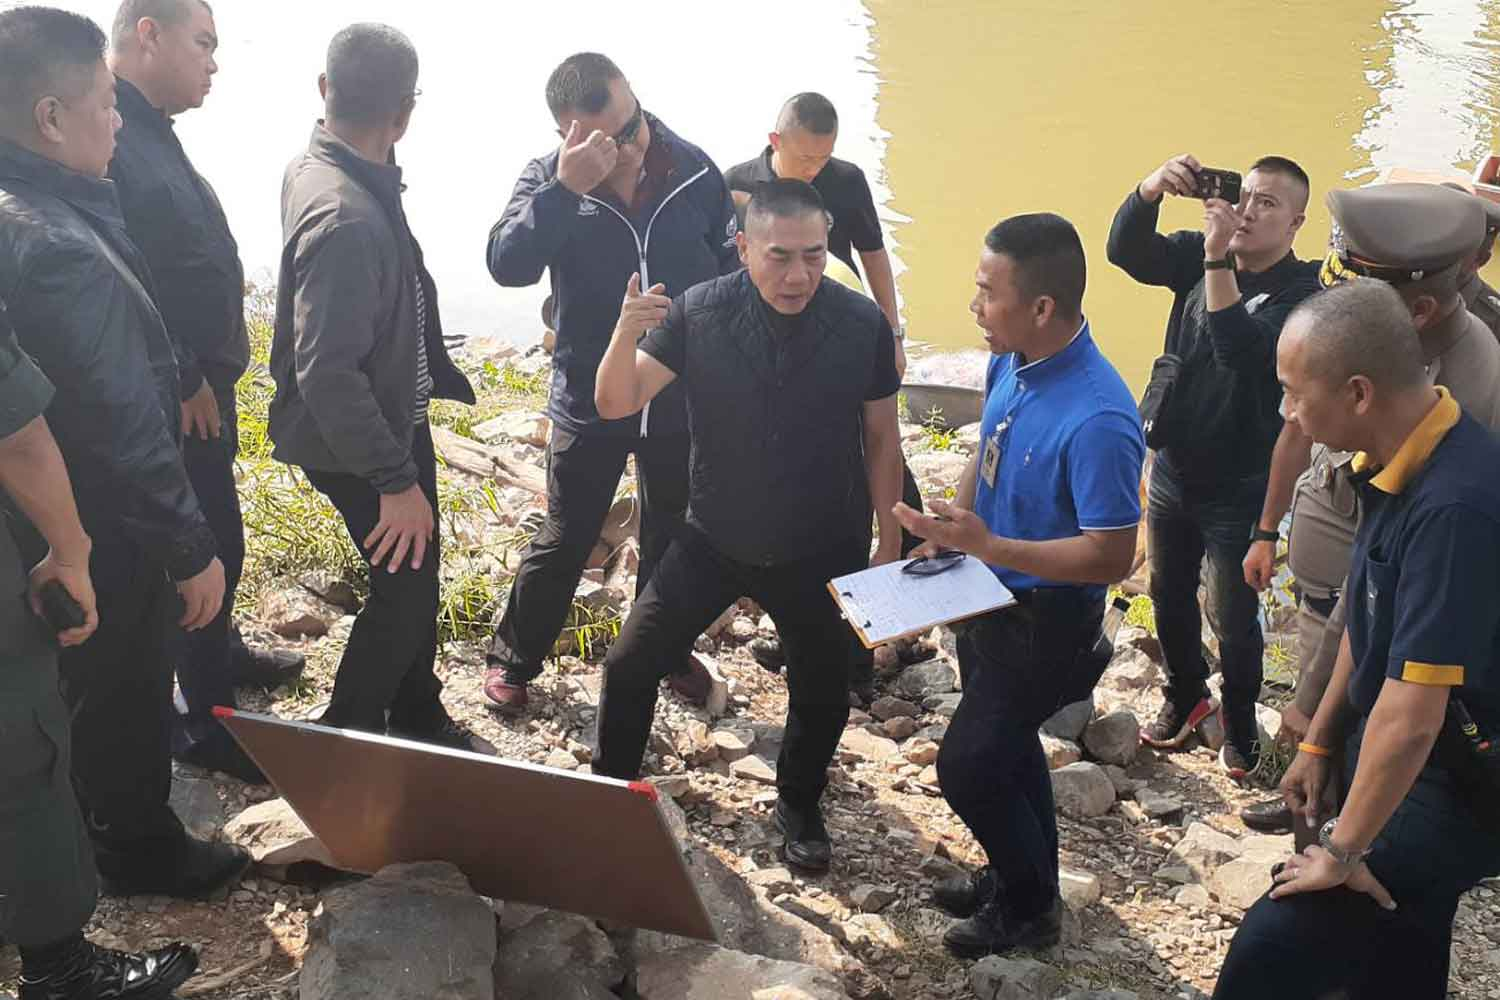 National police chief Pol Gen Chakthip Chaijinda, centre, directs the fruitless search for the stolen gold from the bank of the Chao Phraya river in Sing Buri province on Wednesday. (Police photo)